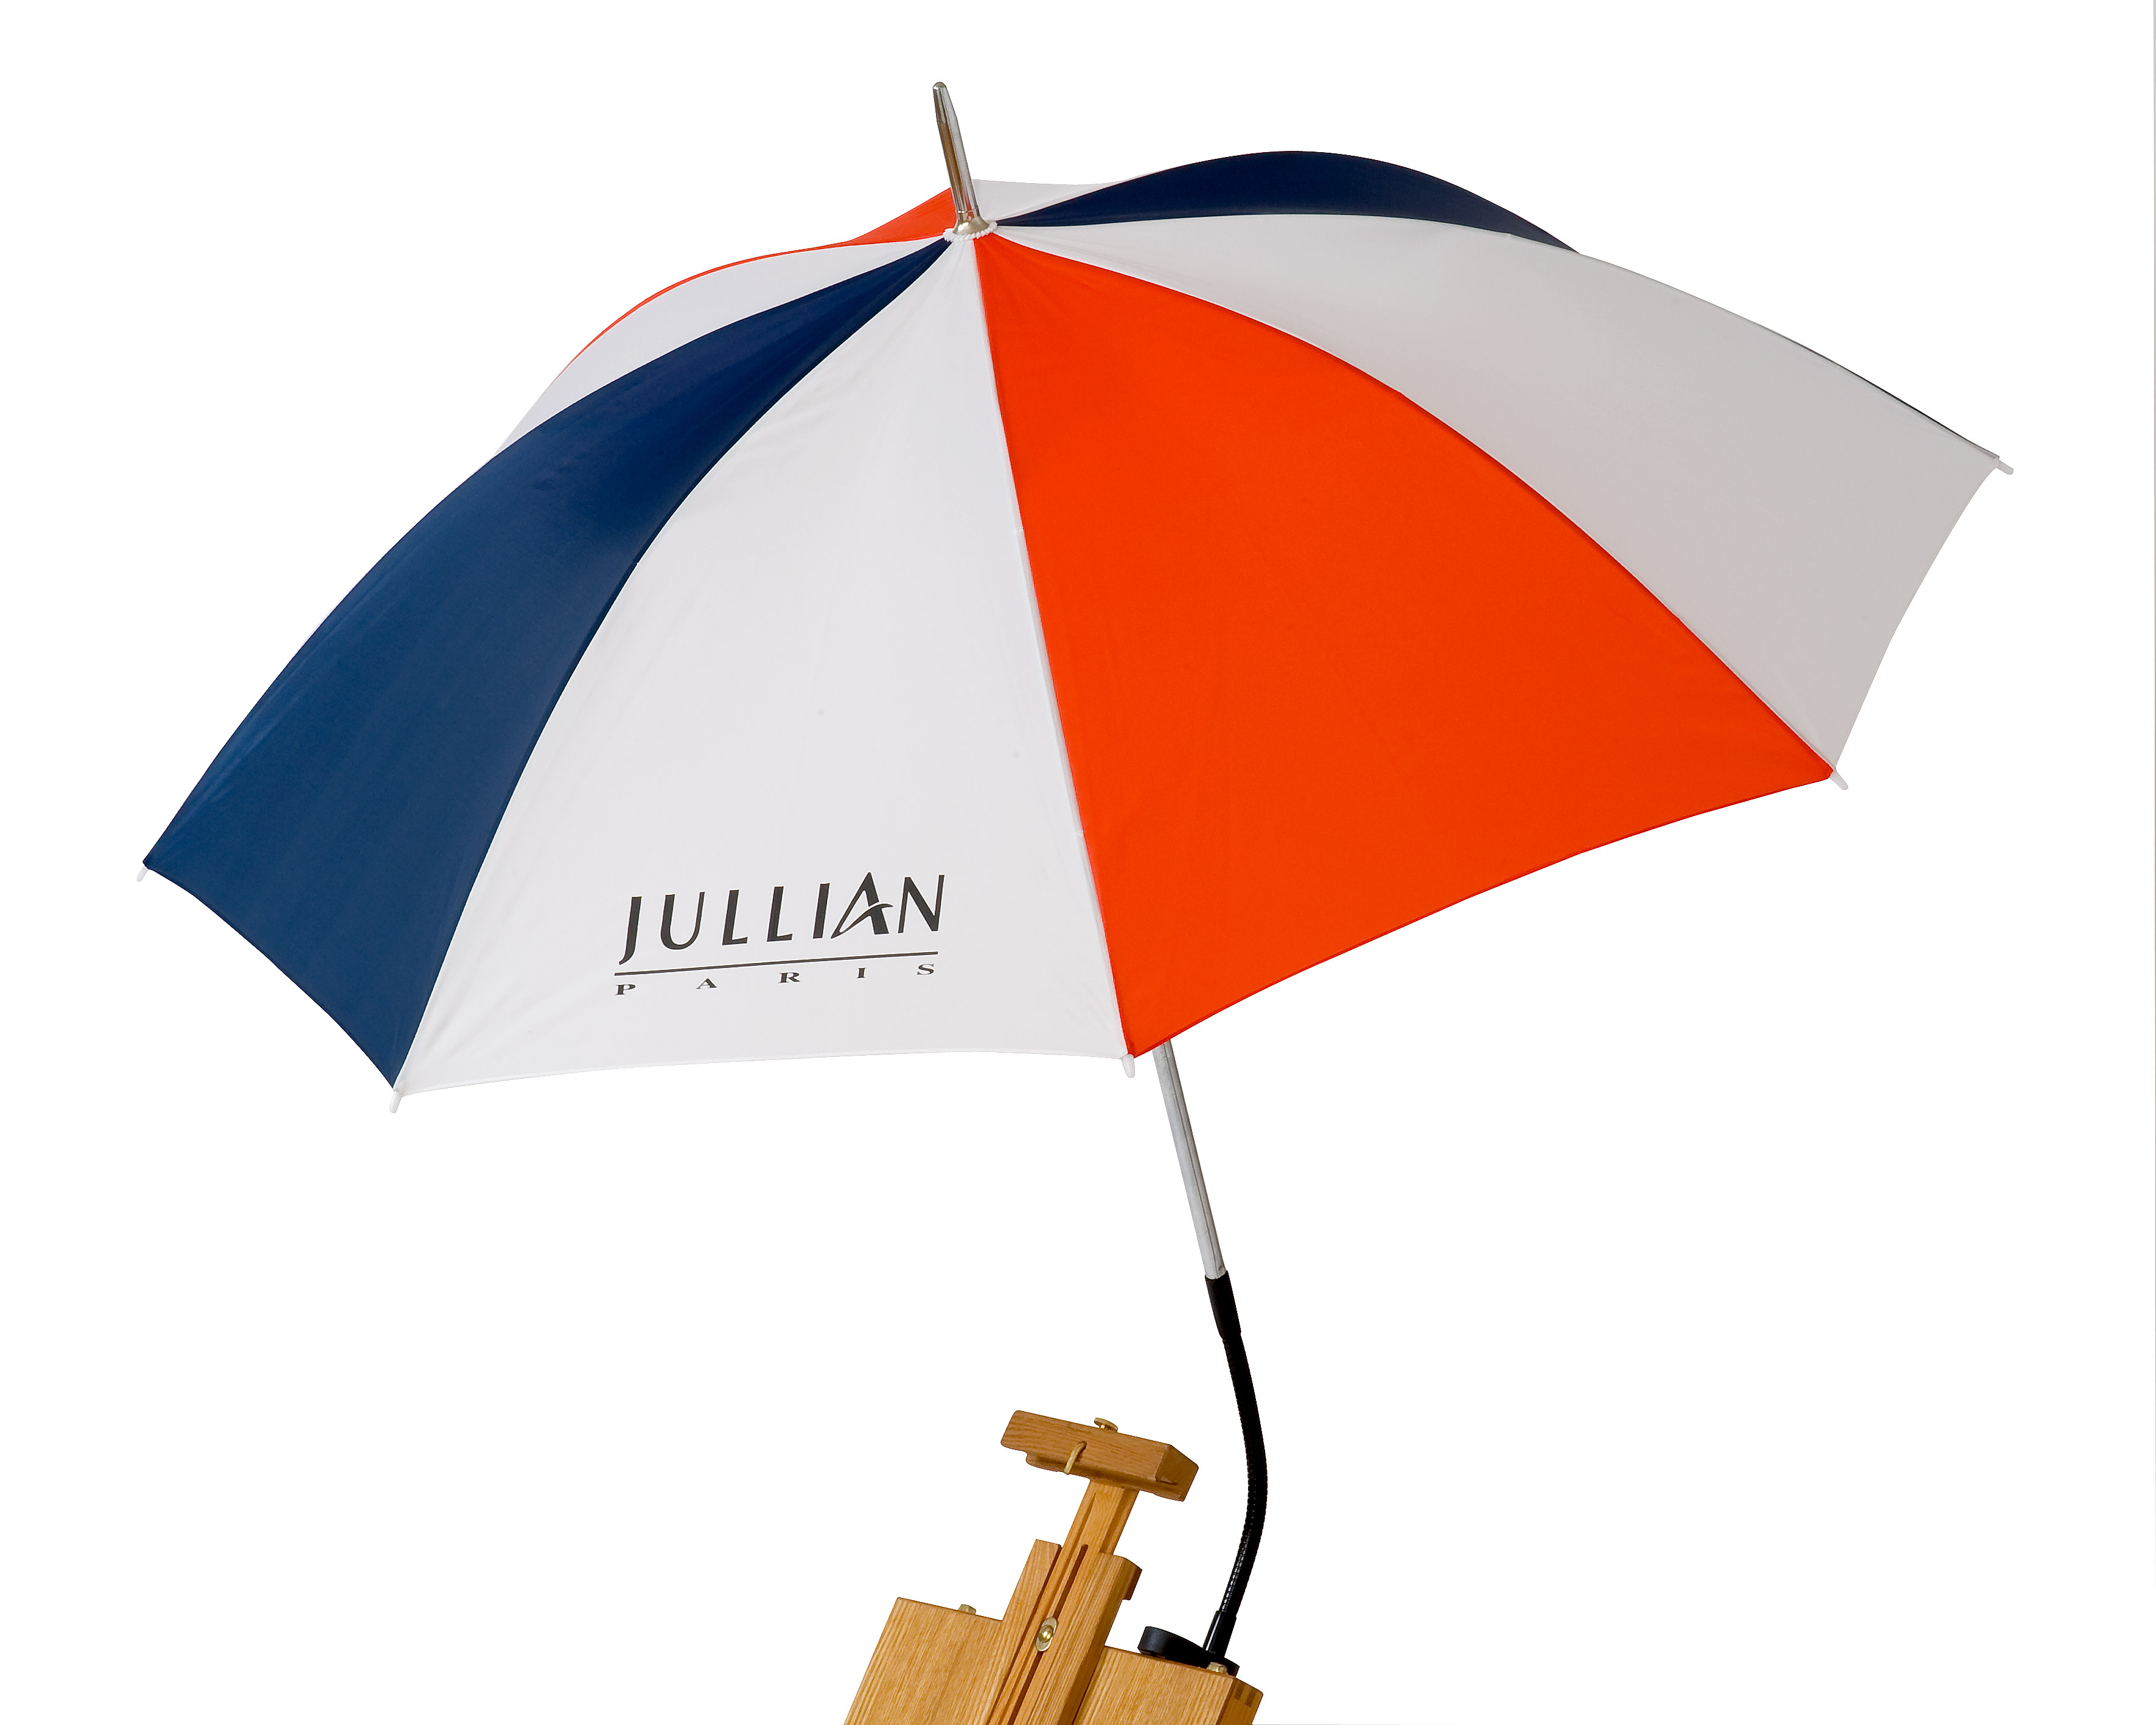 French umbrella